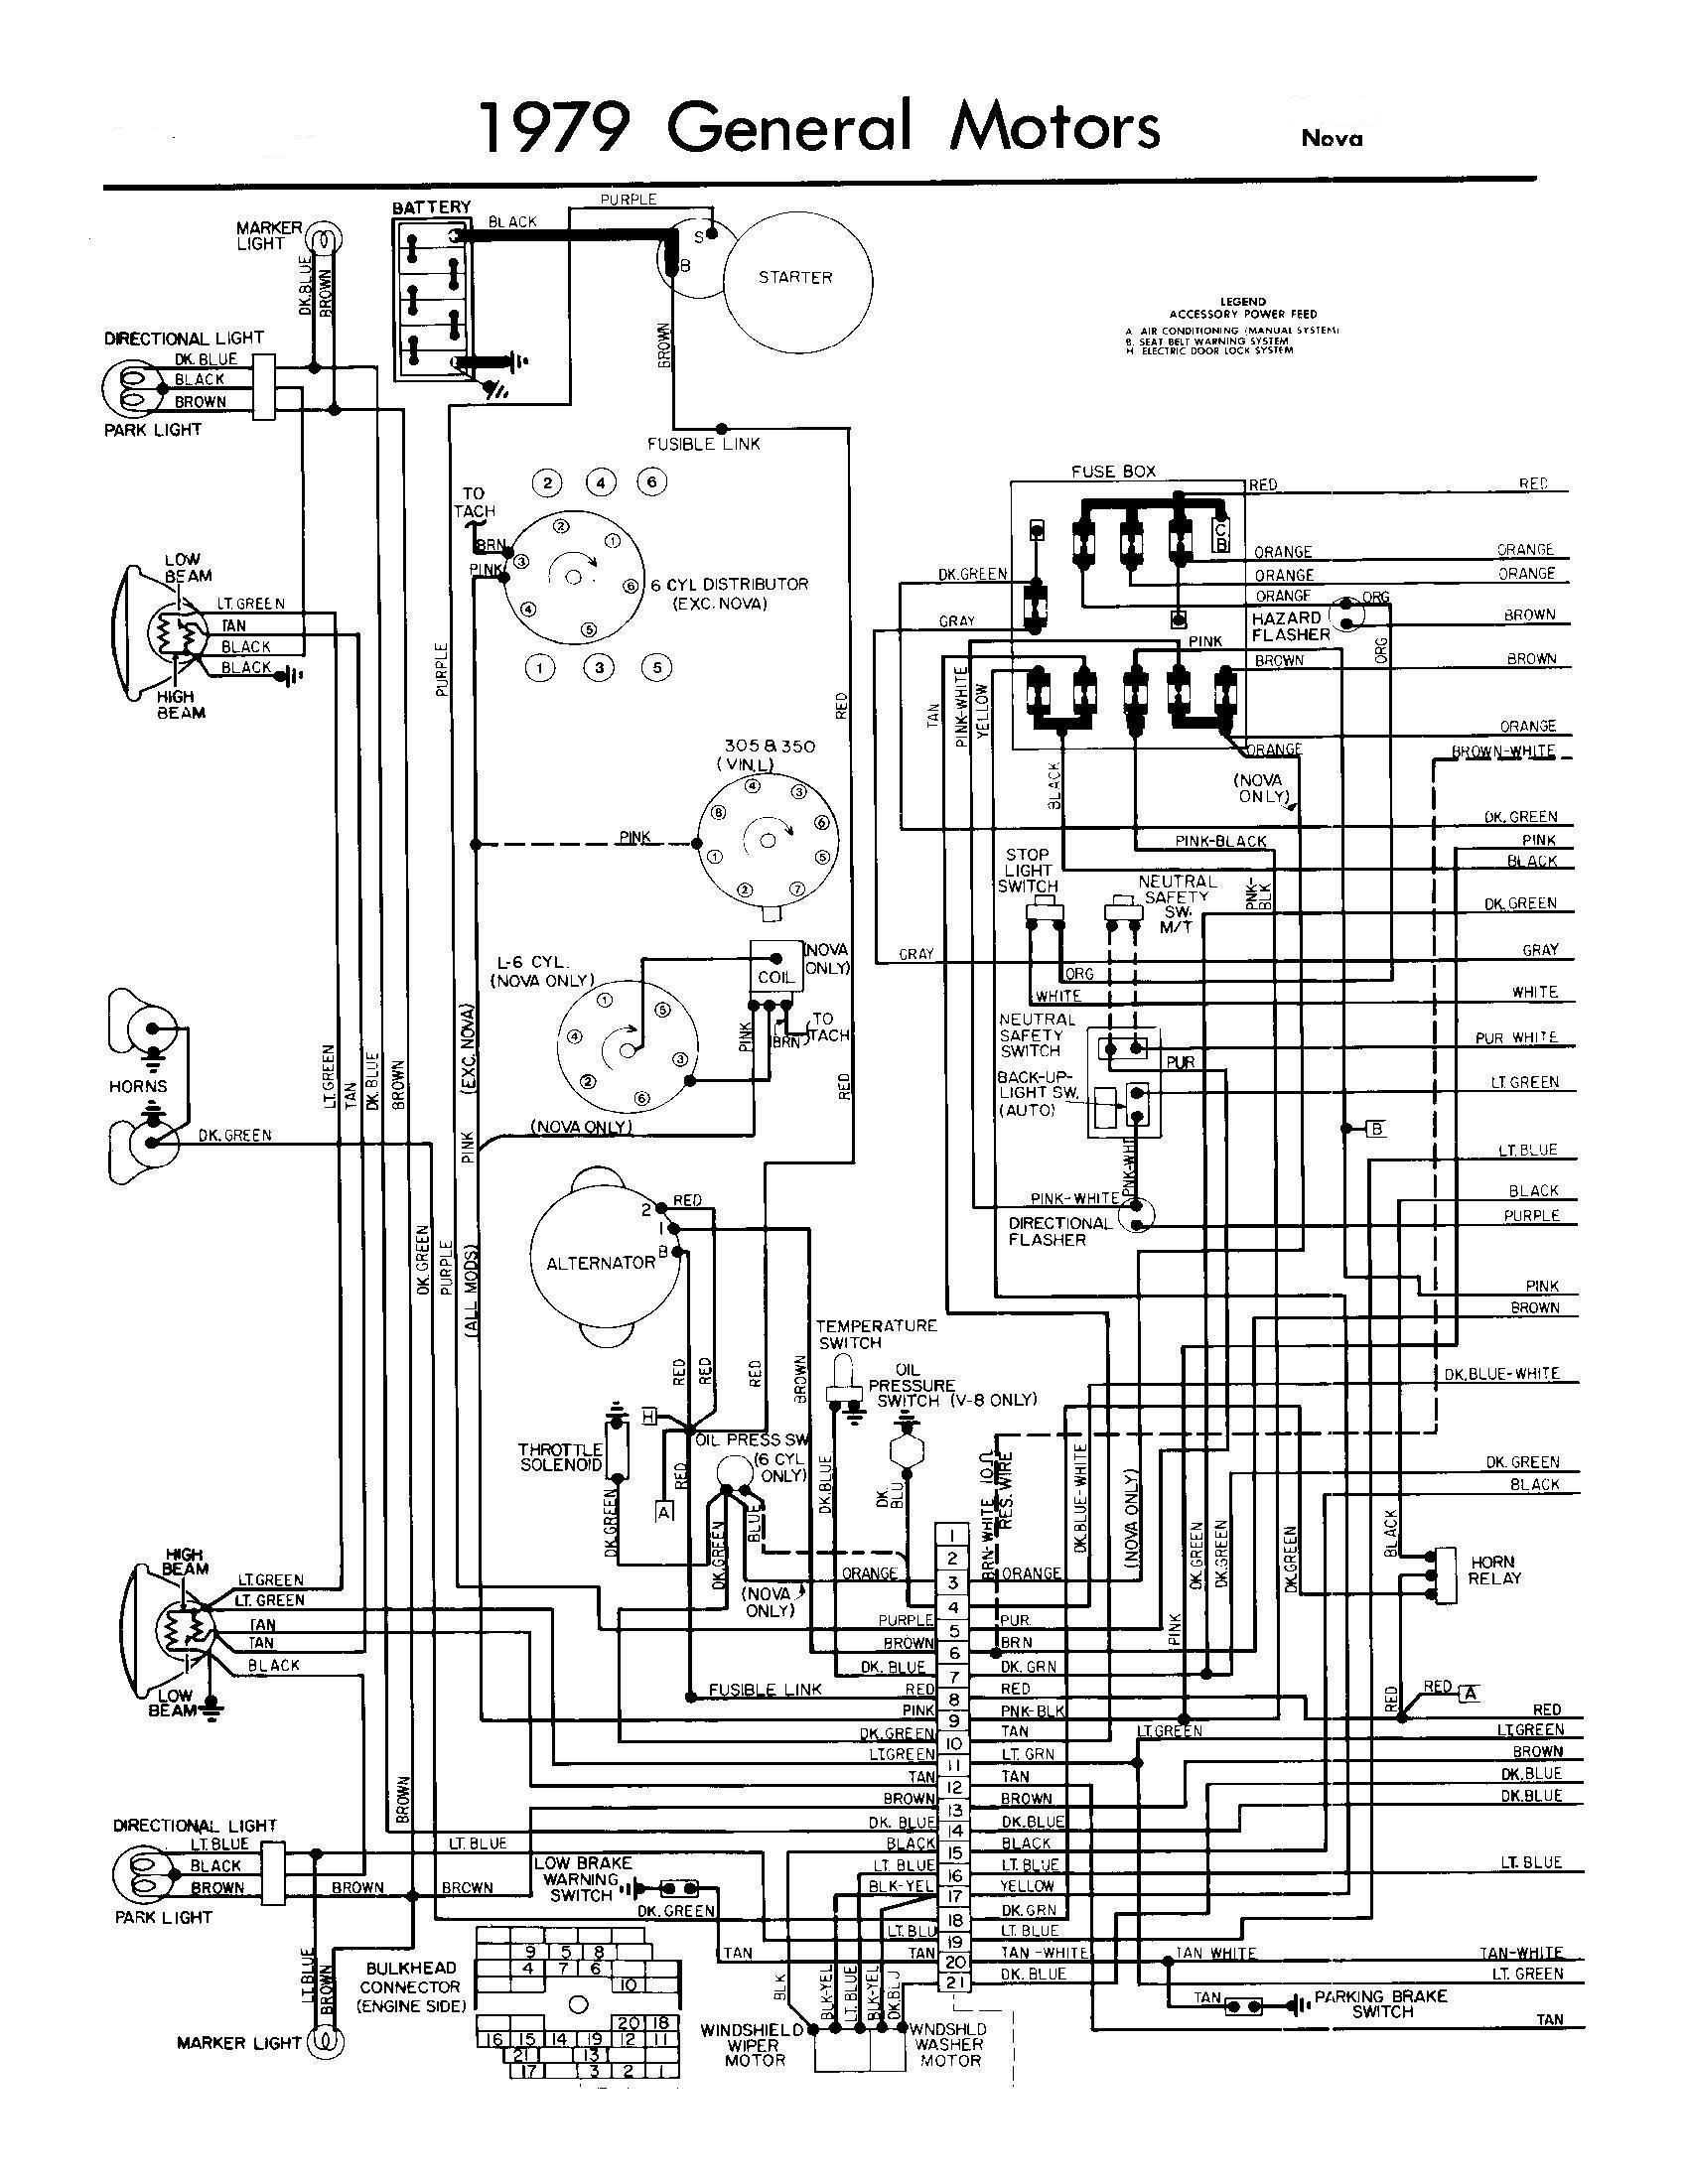 hight resolution of 79 chevy luv fuse box cover wiring diagram81 chevy truck fuse diagram wiring diagram81 chevy fuse